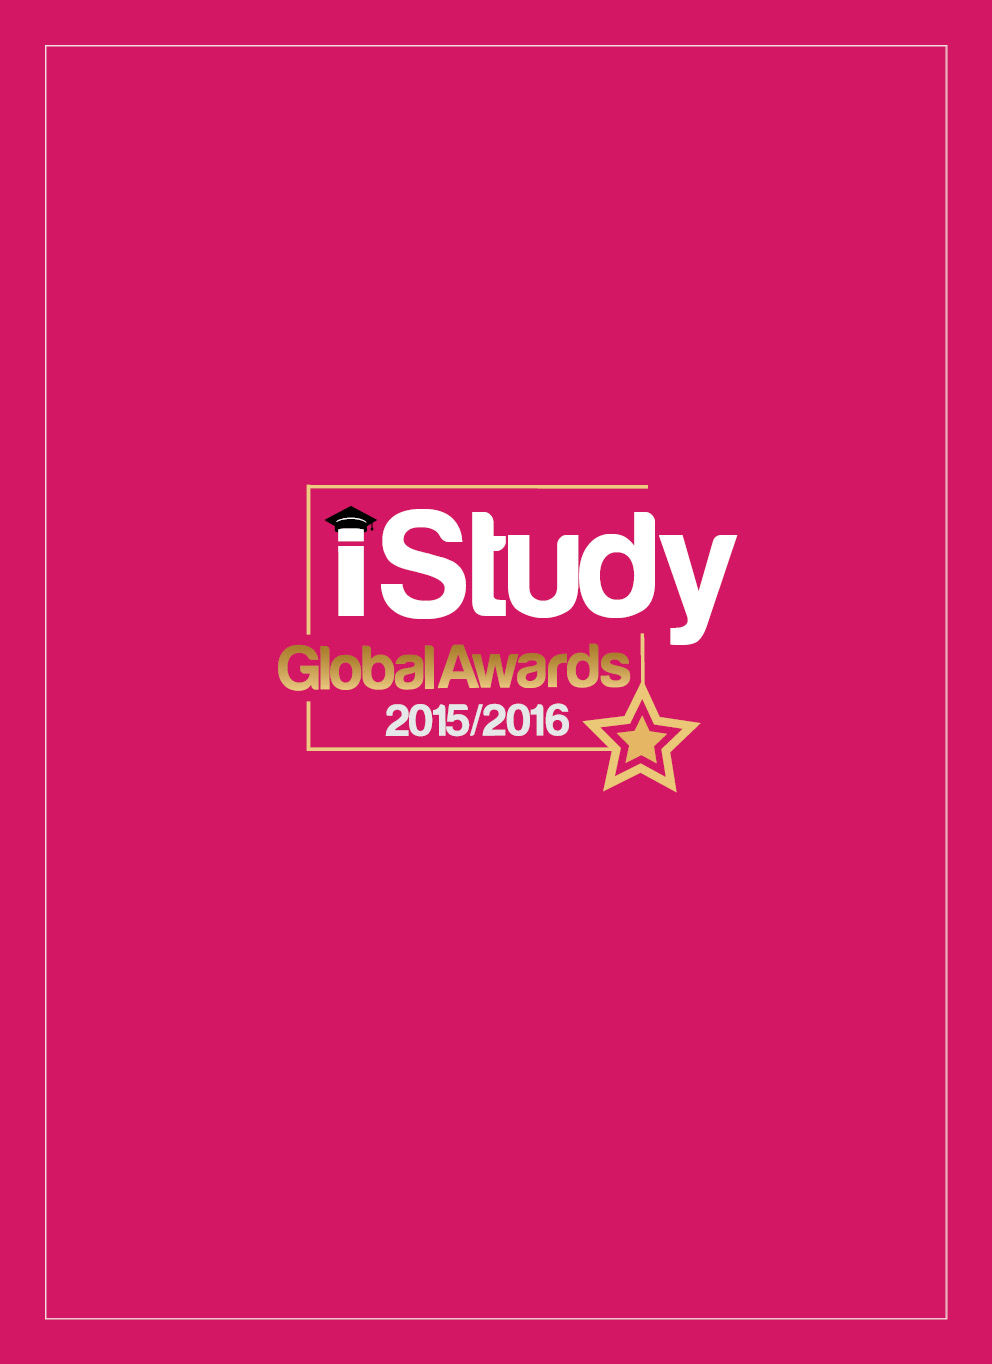 iStudy Global Awards 2015/2016 - Cover Image